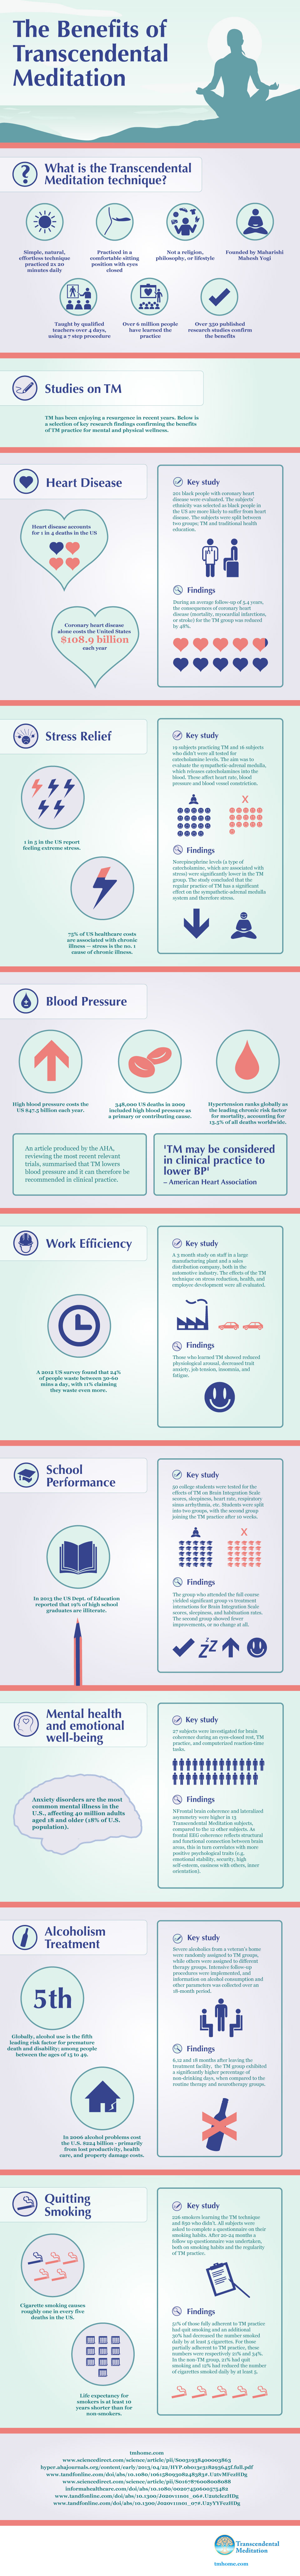 TMH_Infographic_TransMeditation